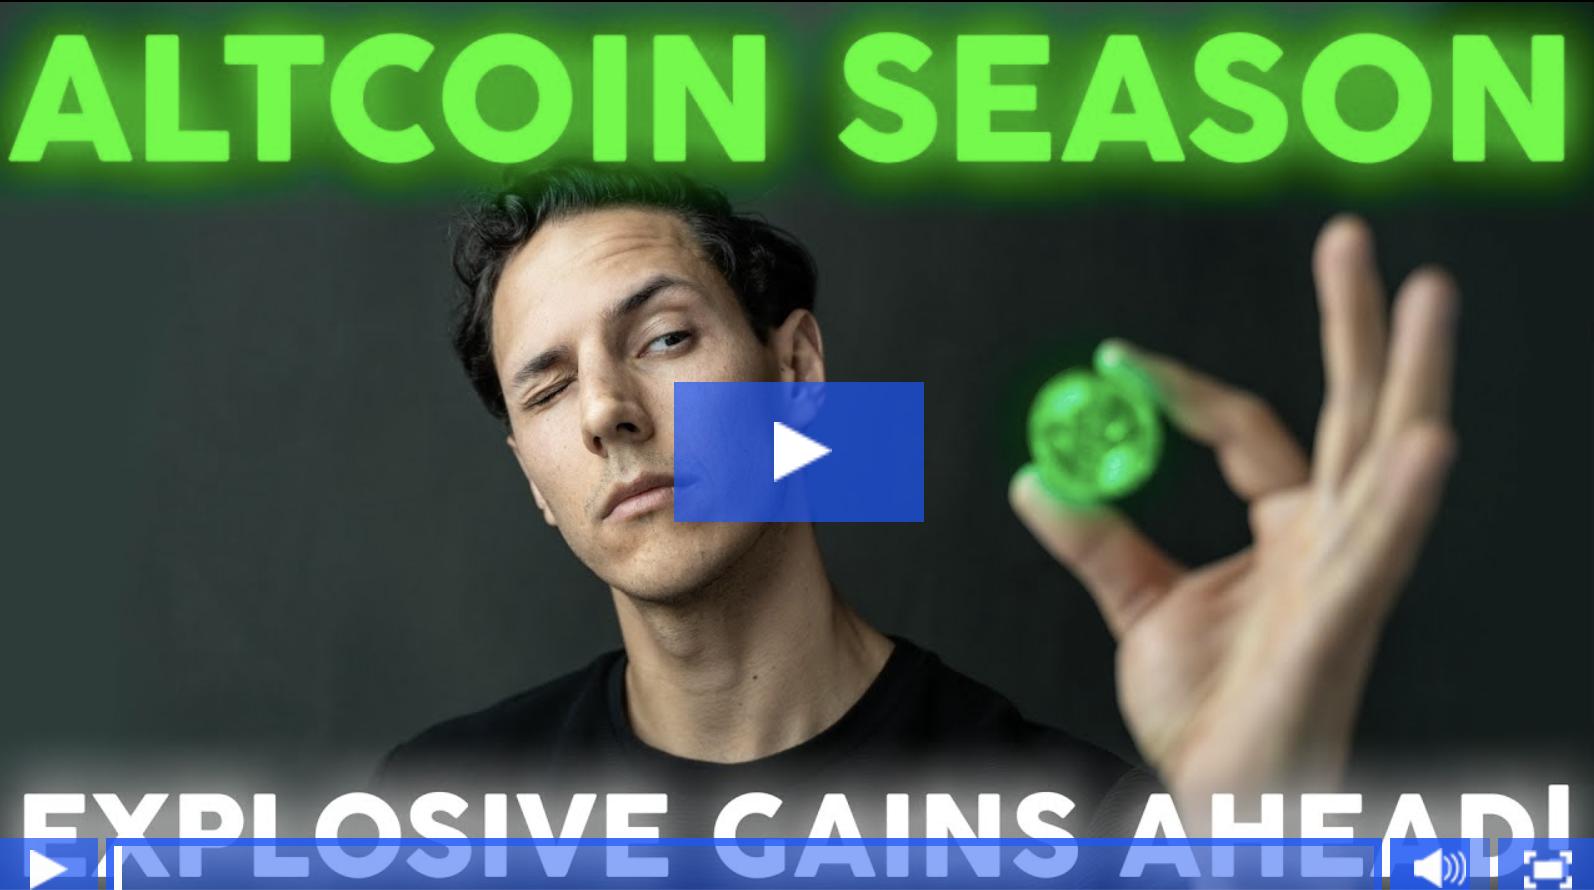 Explosive Growth With Altcoins